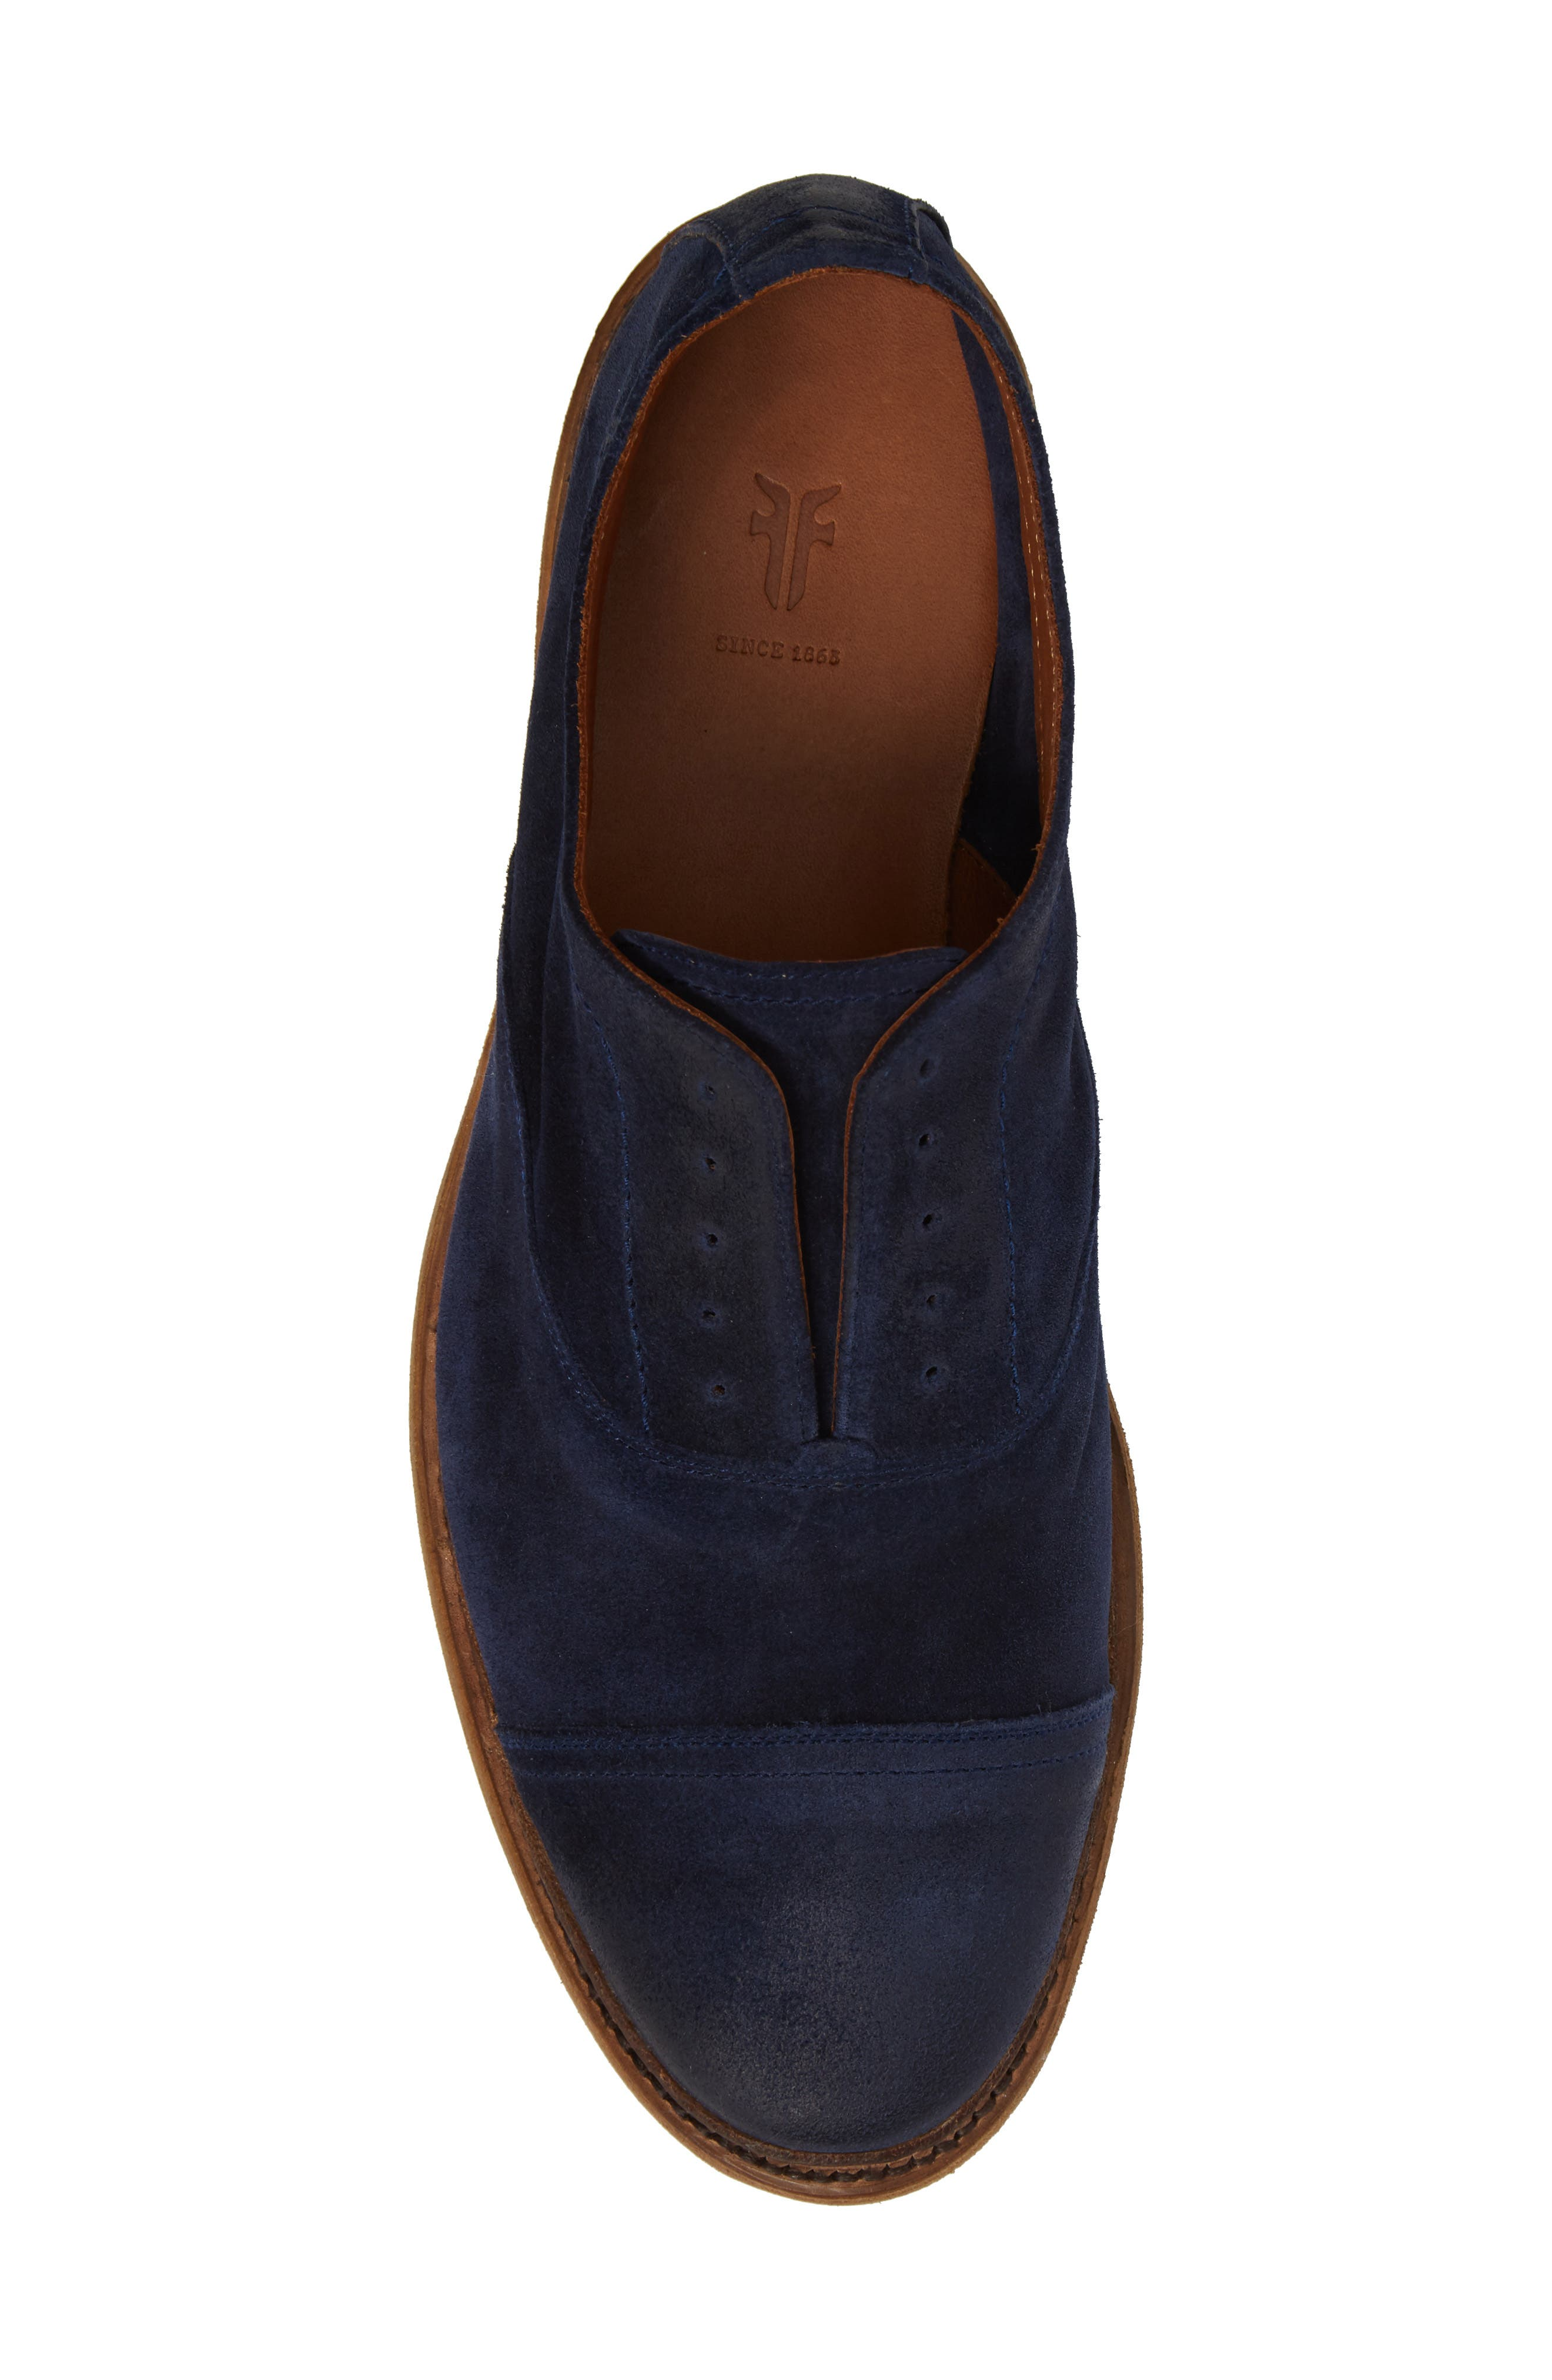 Paul Bal Cap Toe Oxford,                             Alternate thumbnail 5, color,                             Navy Suede